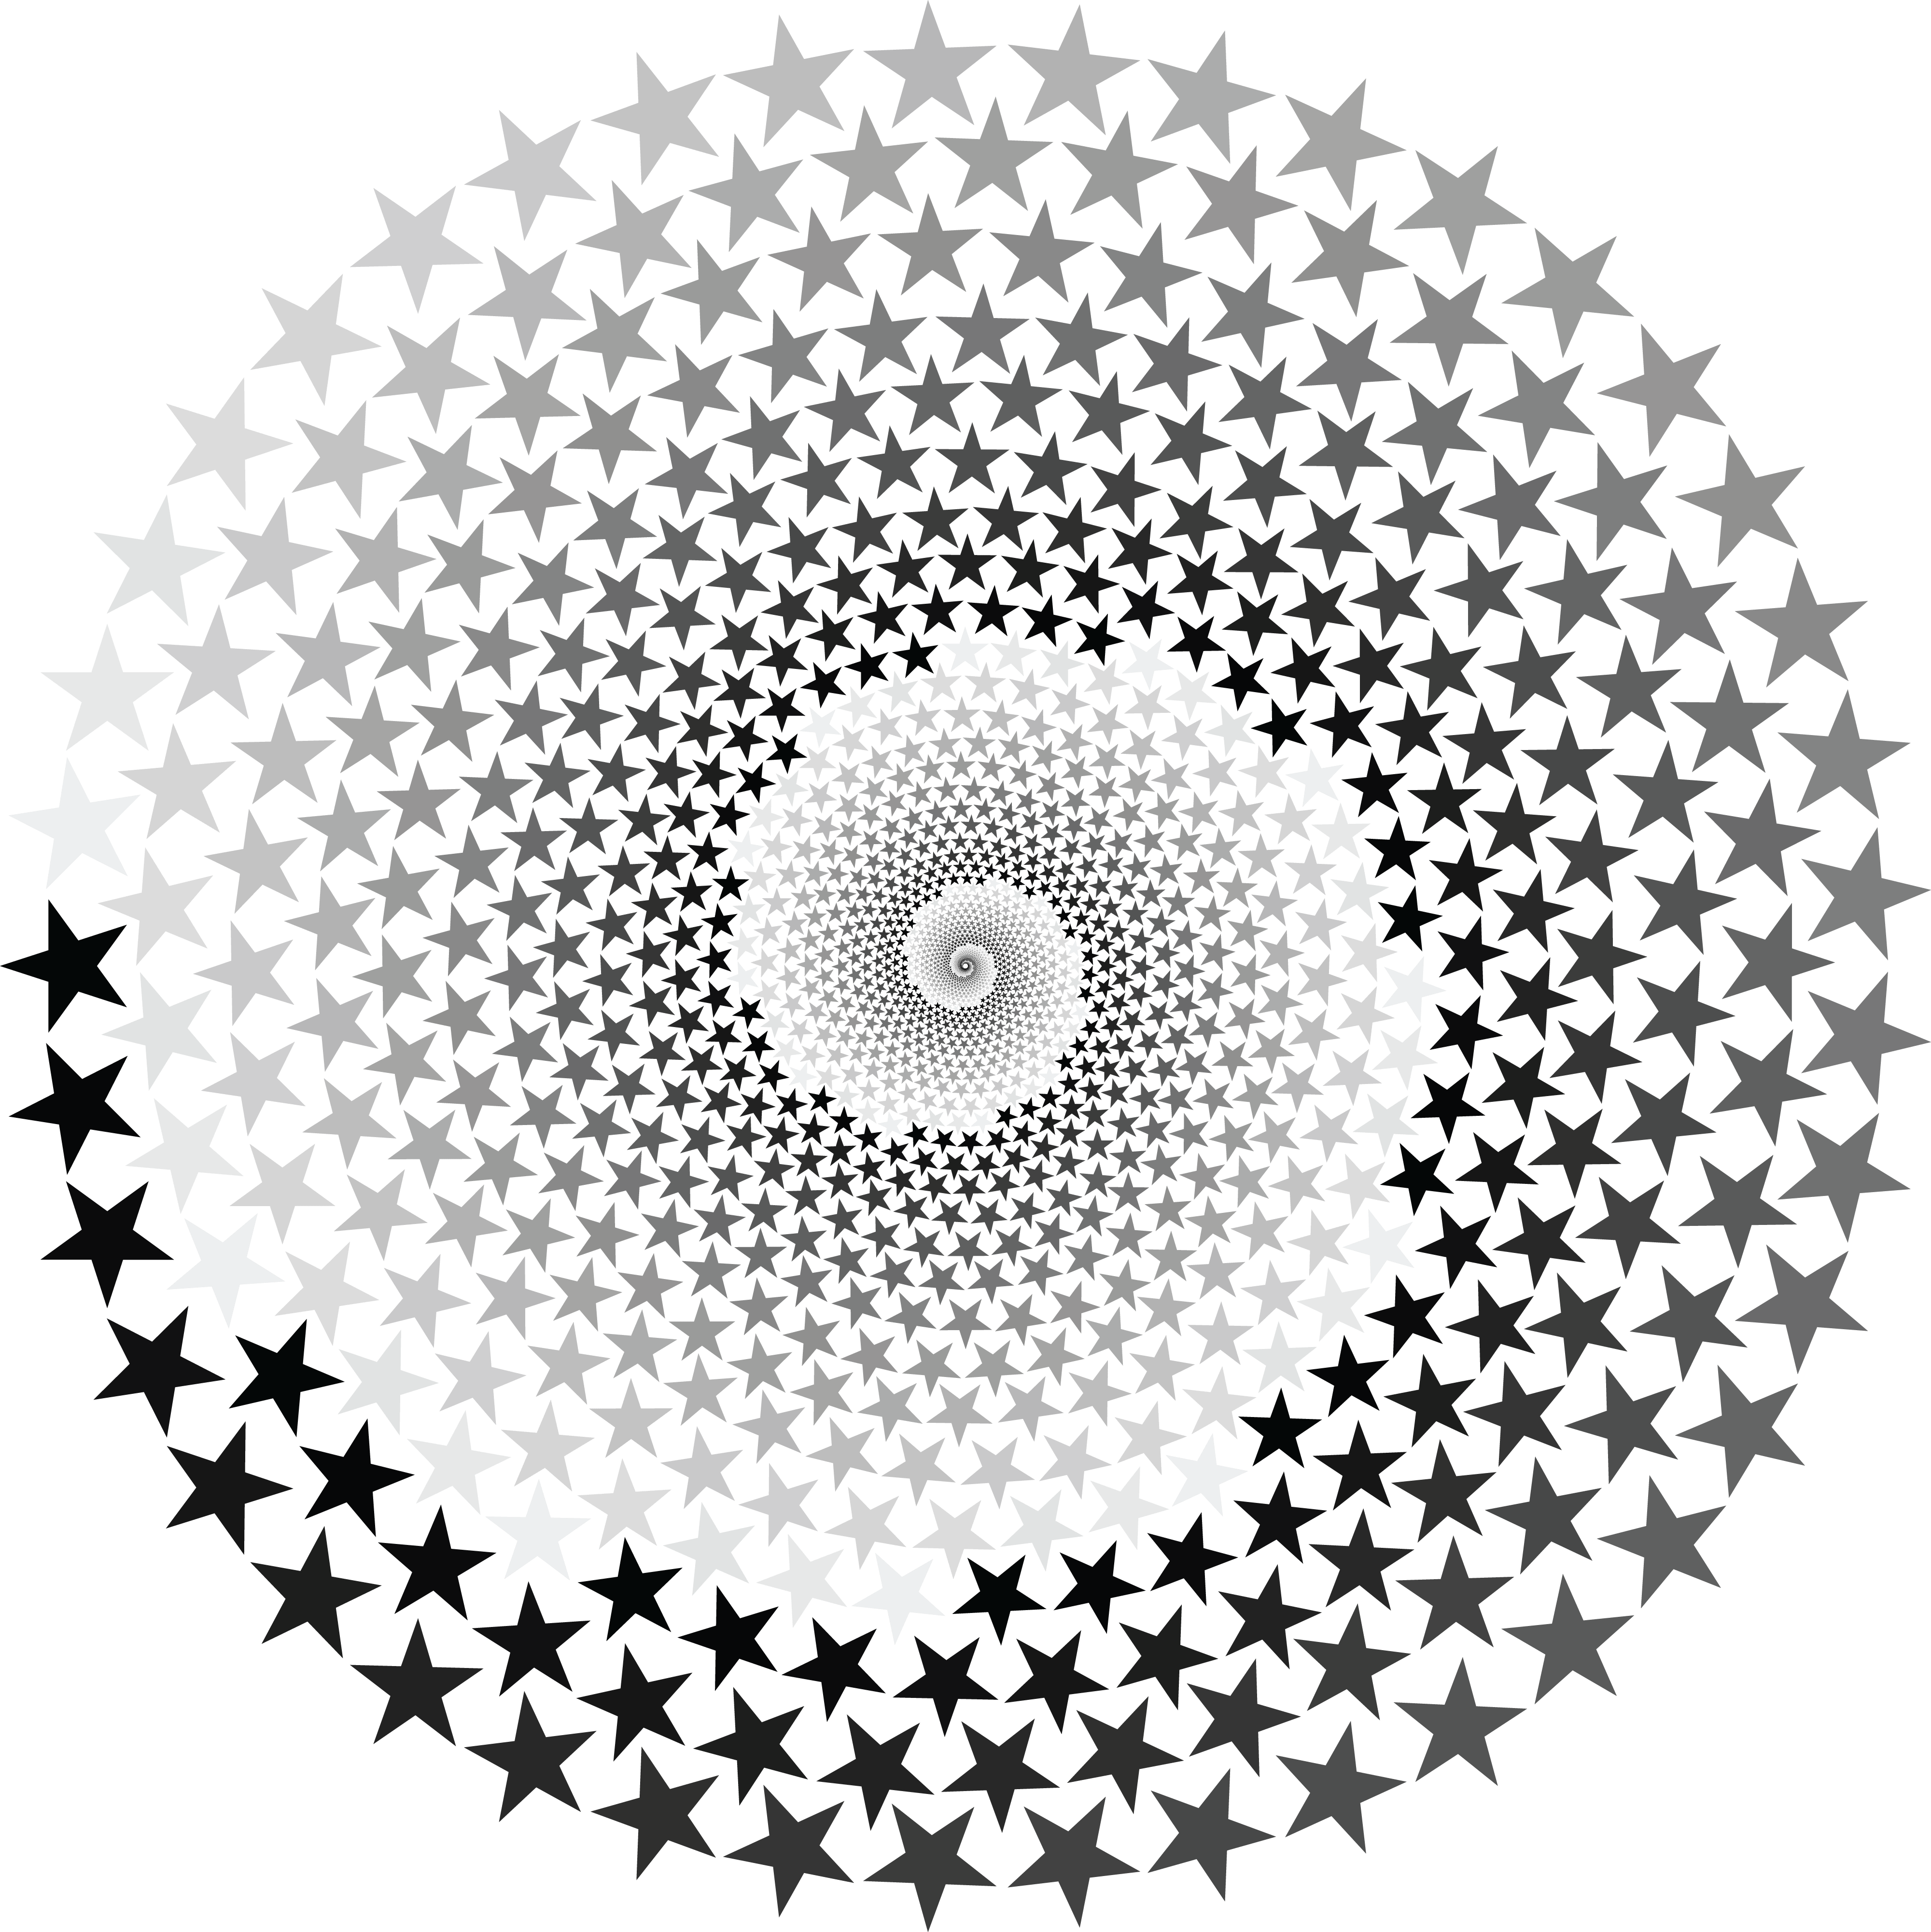 Free Clipart Of A Grayscale Star Vortex